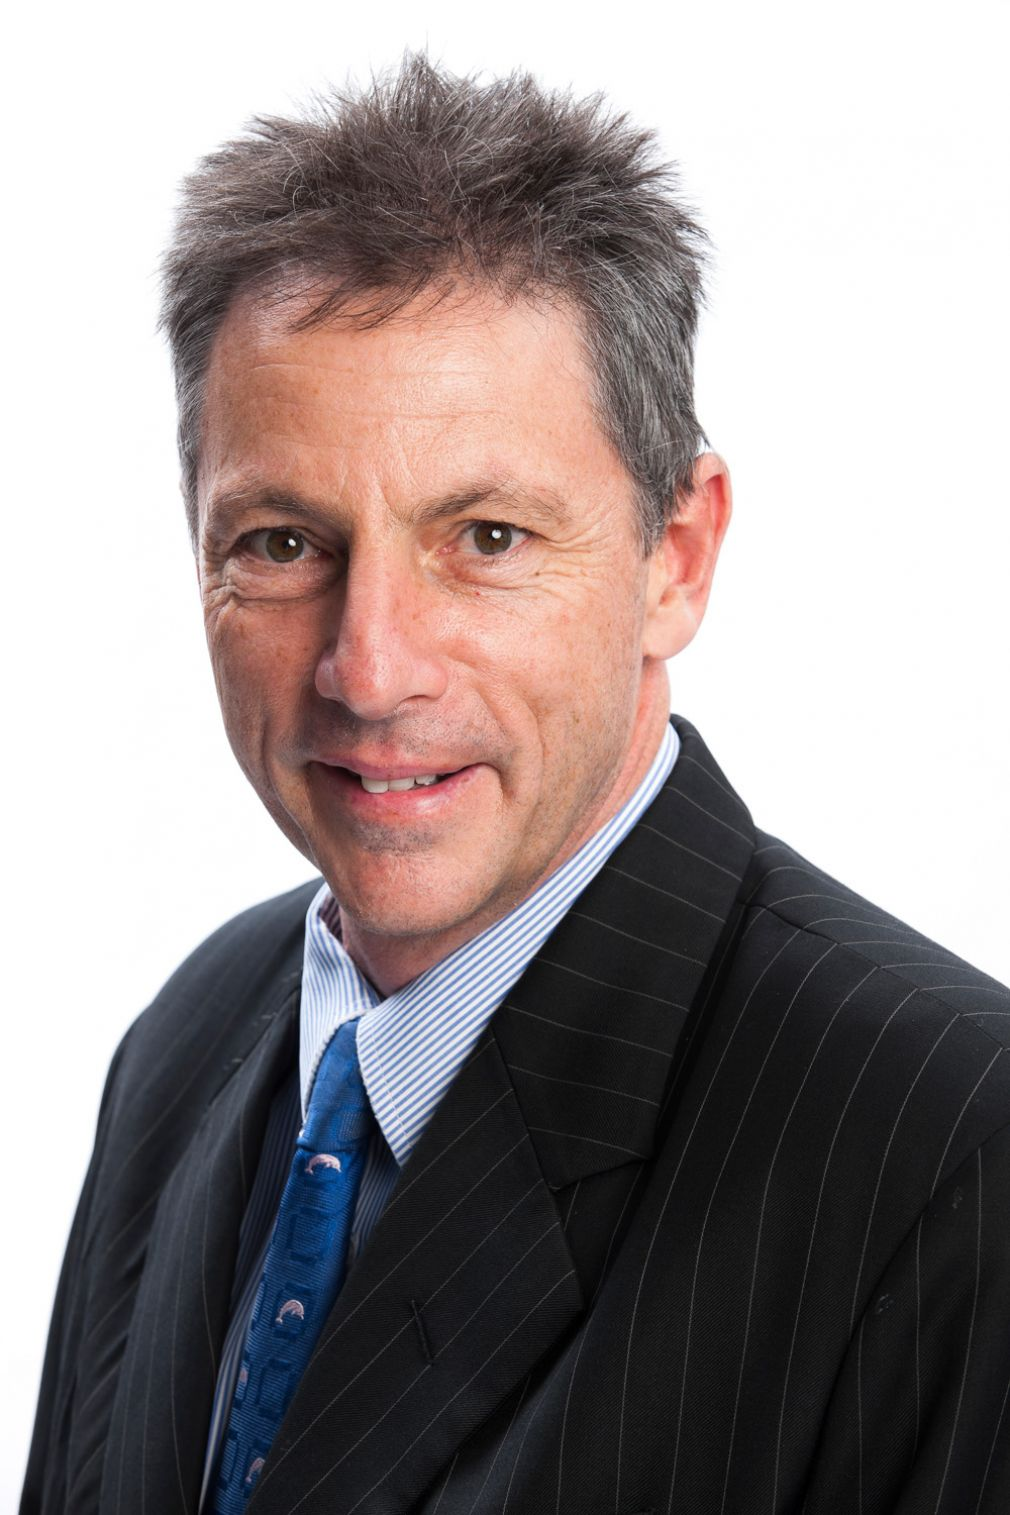 Paul Boynton is the CEO of Old Mutual Alternative Investment.